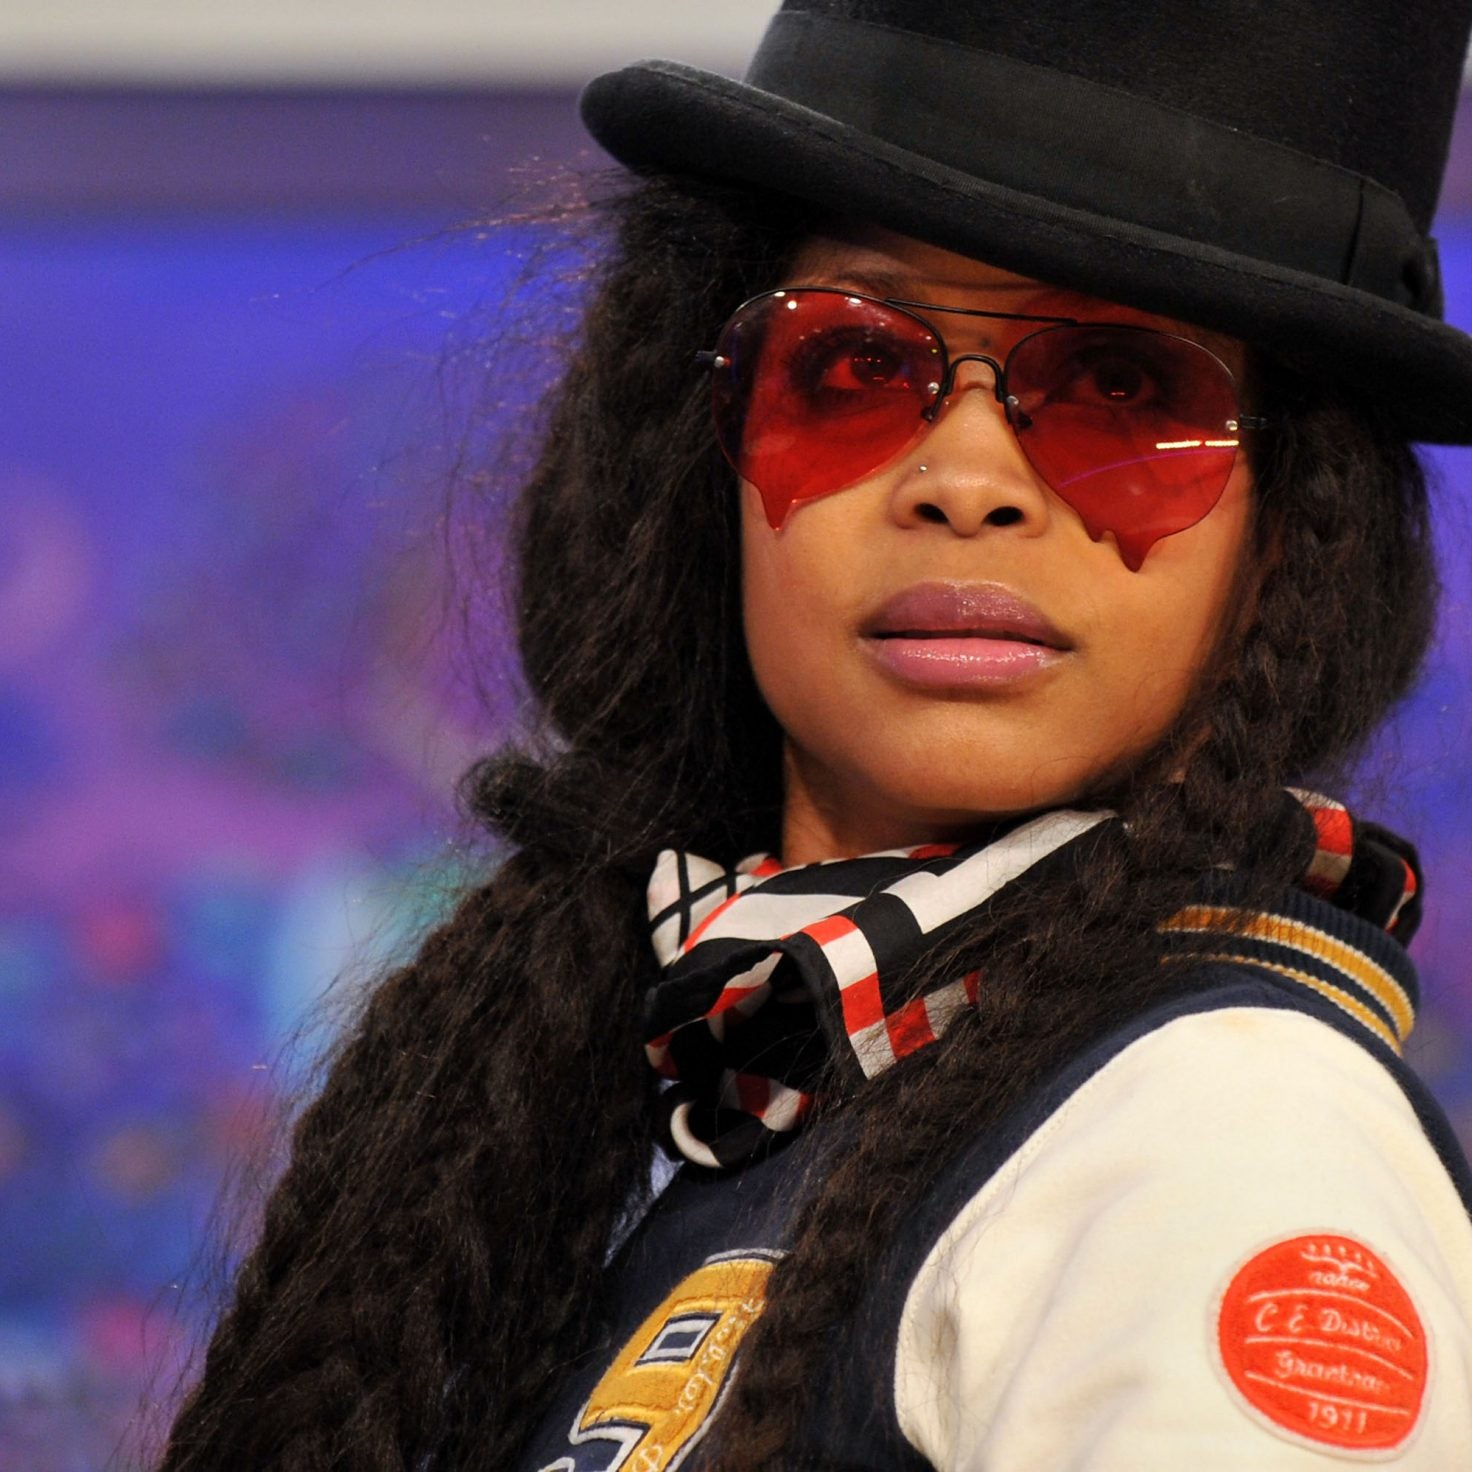 Erykah Badu Just Shared Her Confusing COVID-19 Results